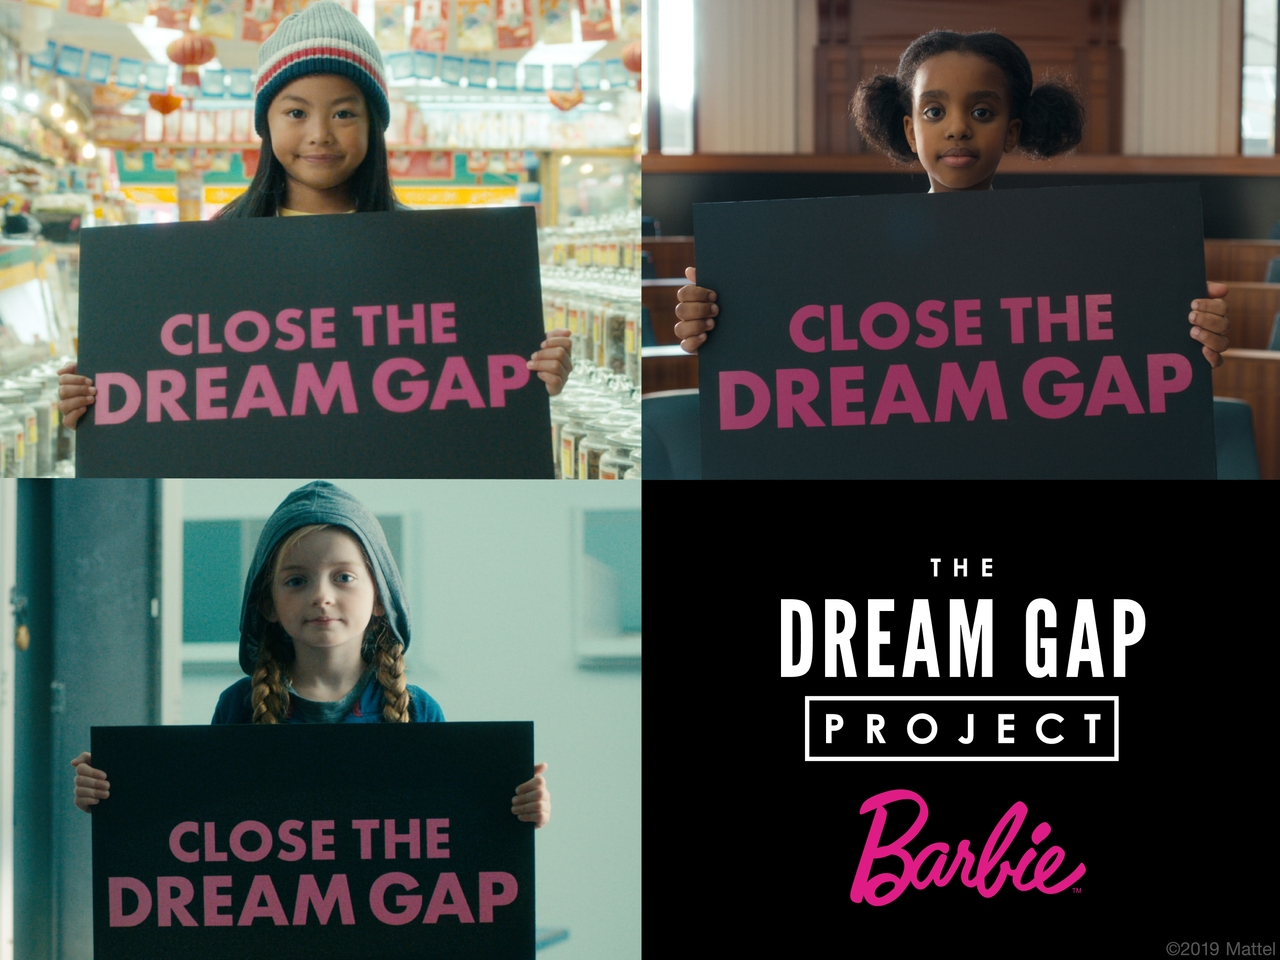 Barbie Dream Gap Project